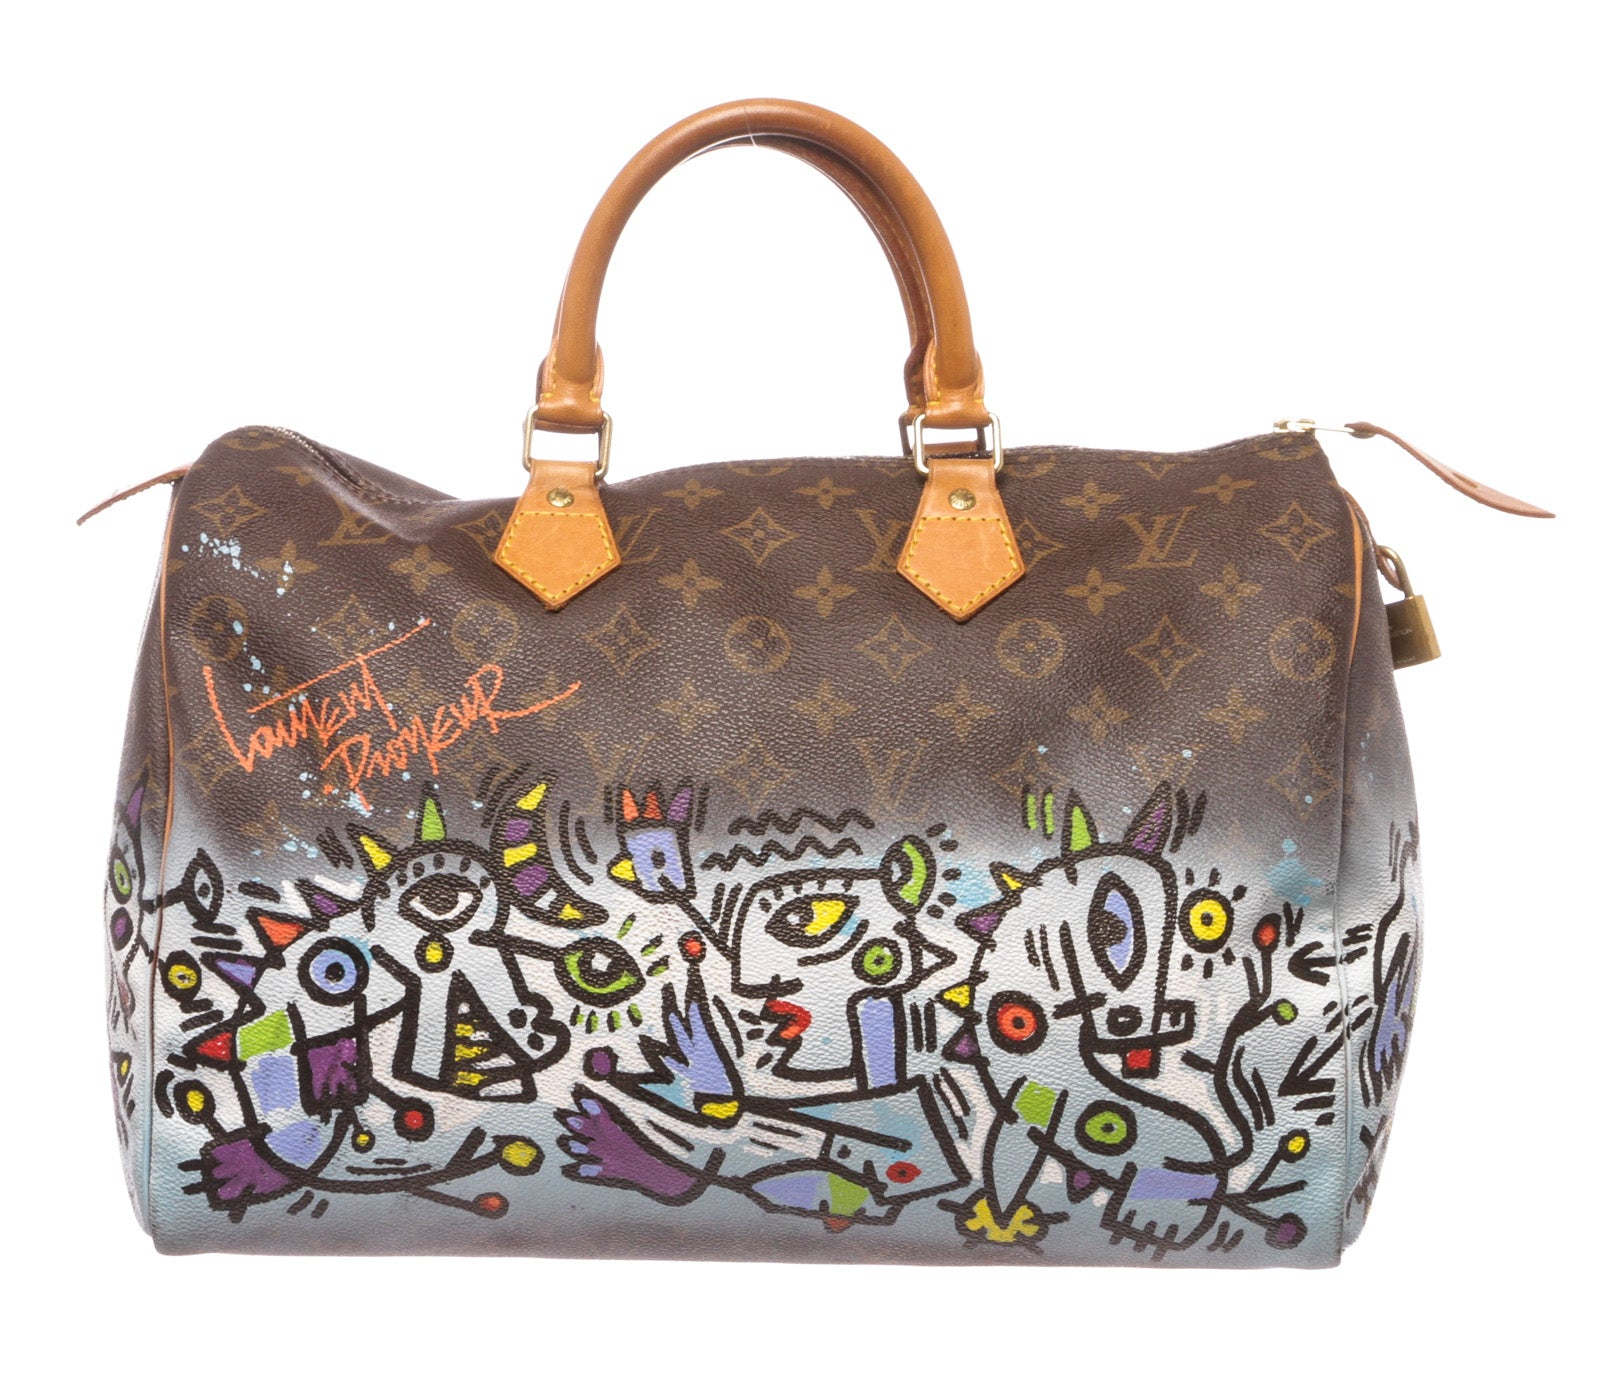 381810a88a6b VOYART - Individually Made - Louis Vuitton Duffle Bag - Series 5 – THE LIONZ